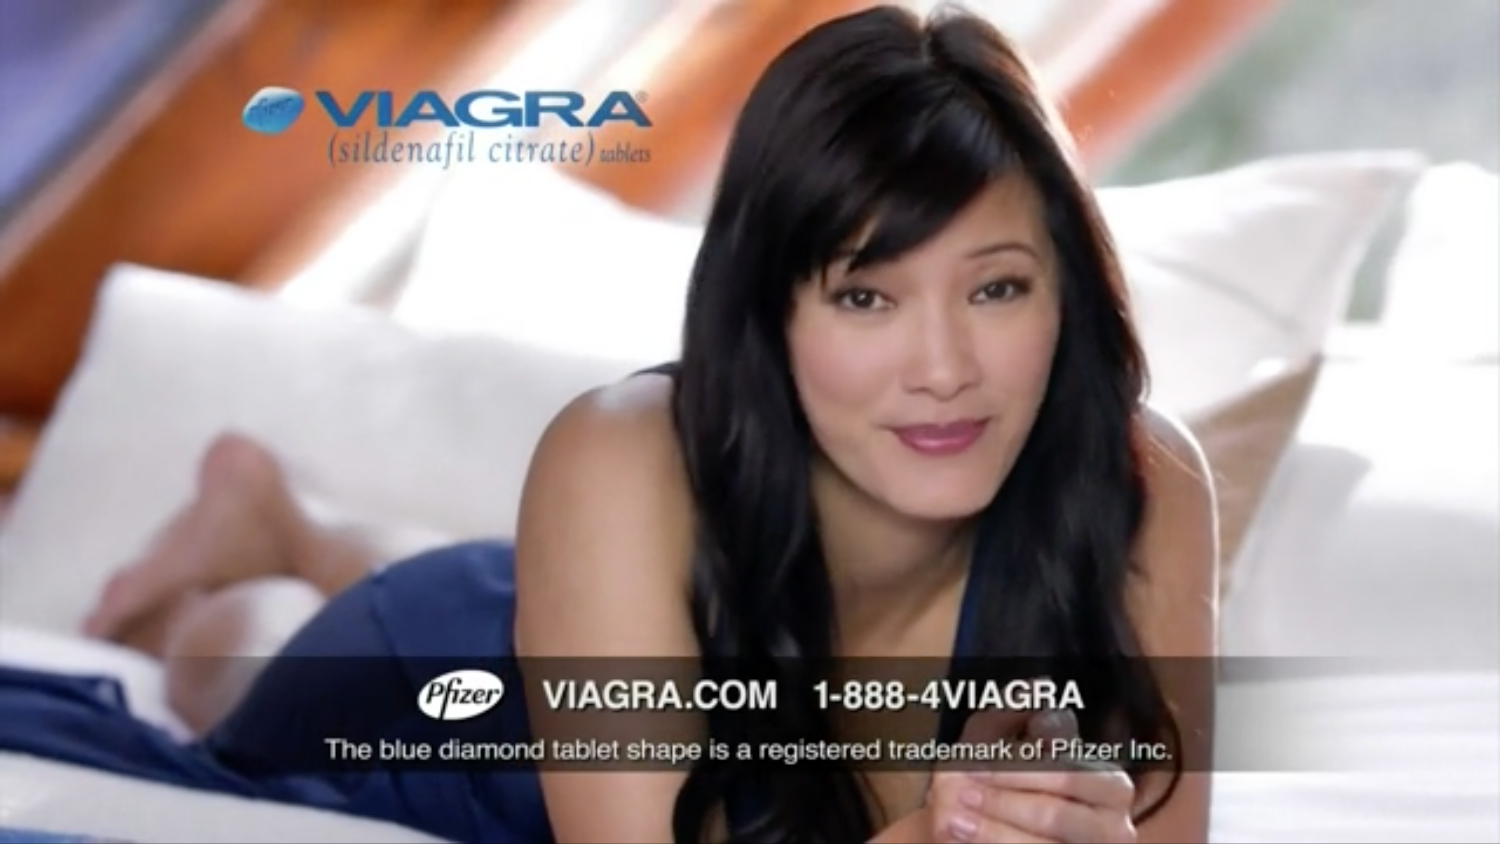 Viagra ad girl in football jersey